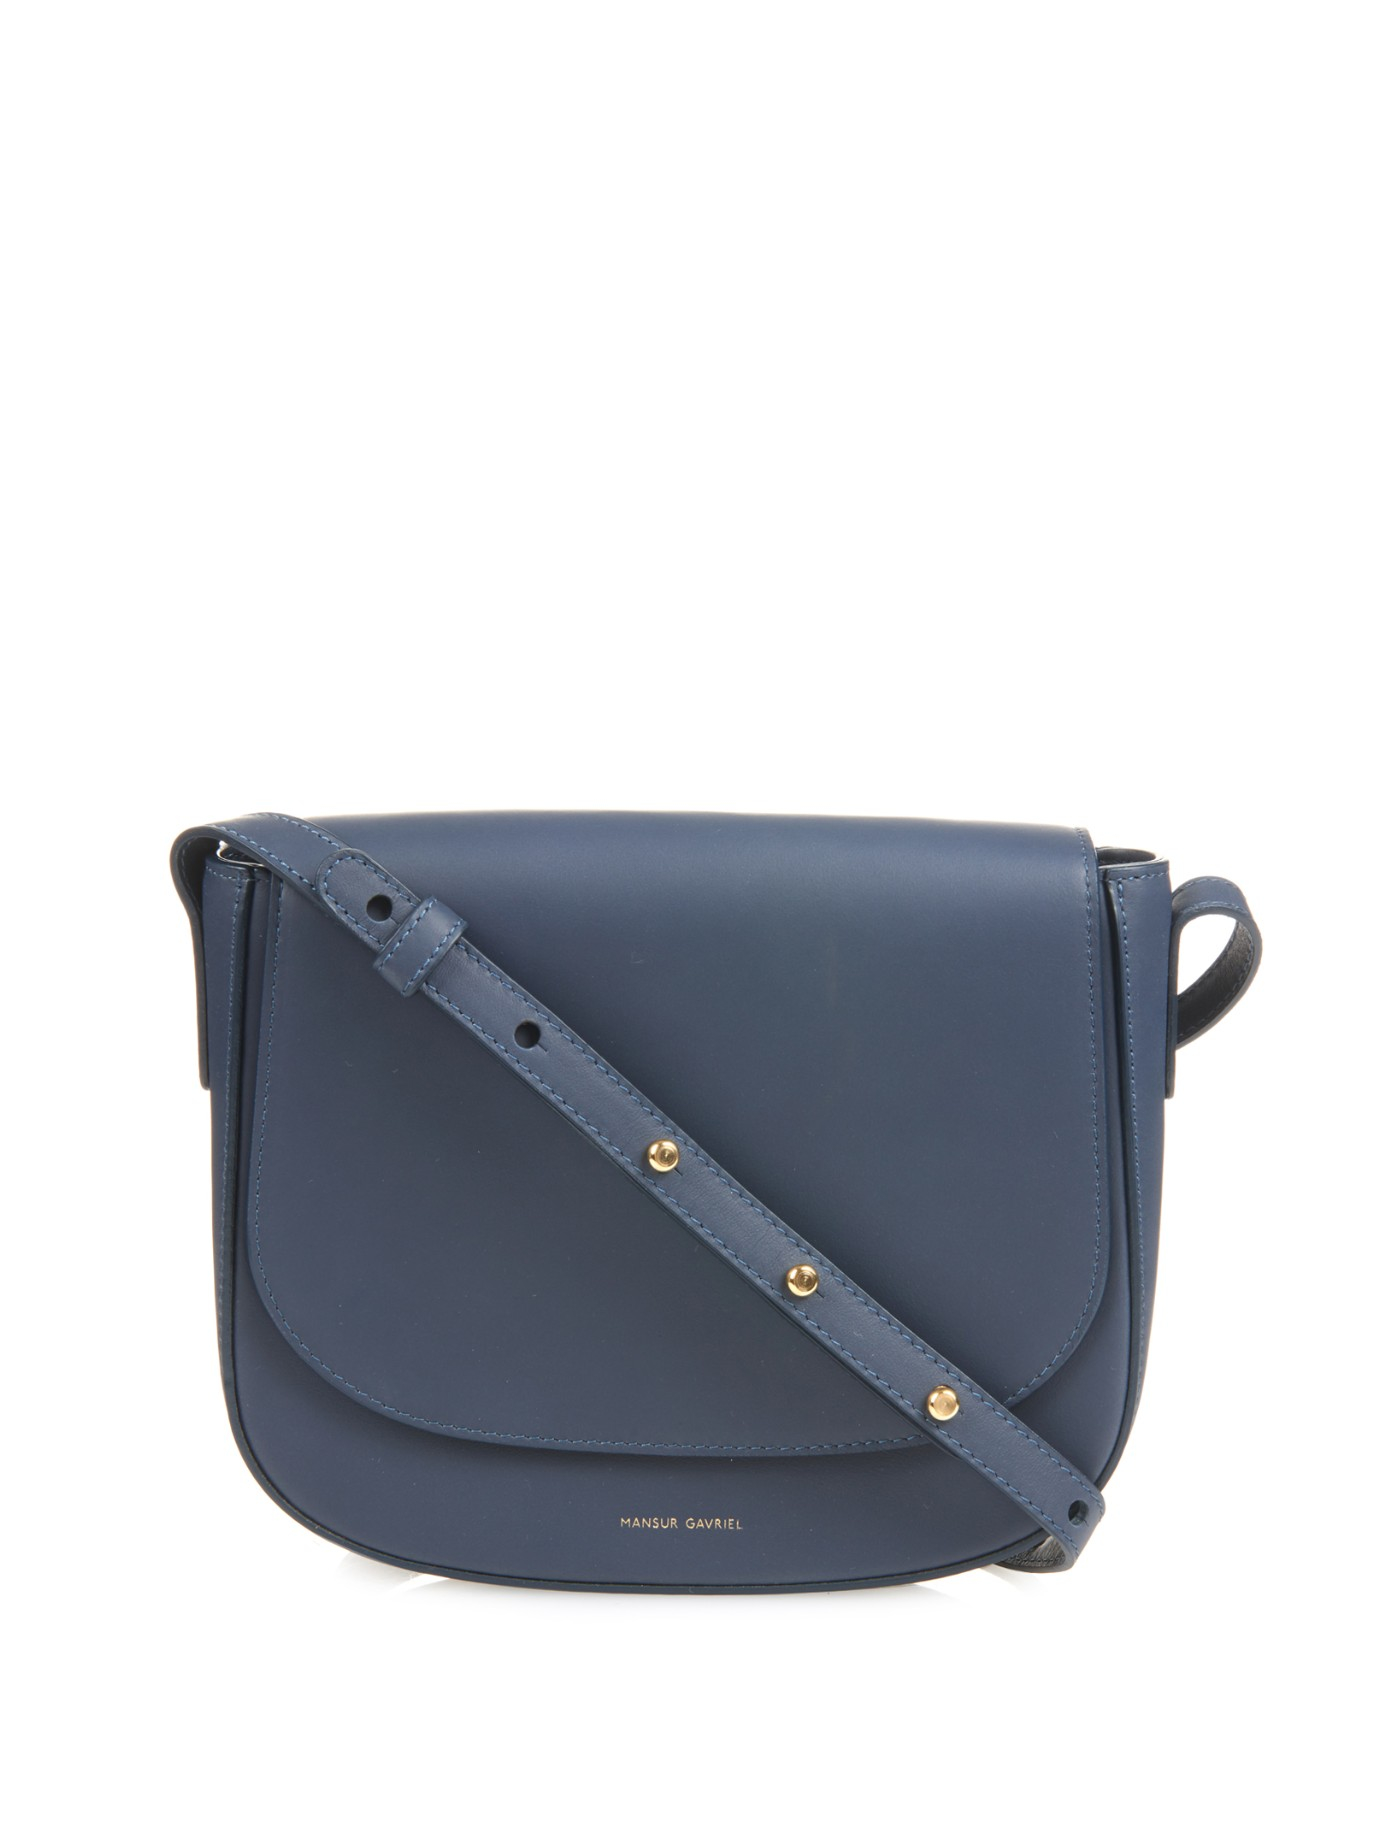 Mansur gavriel Calf-Leather Cross-Body Bag in Blue | Lyst